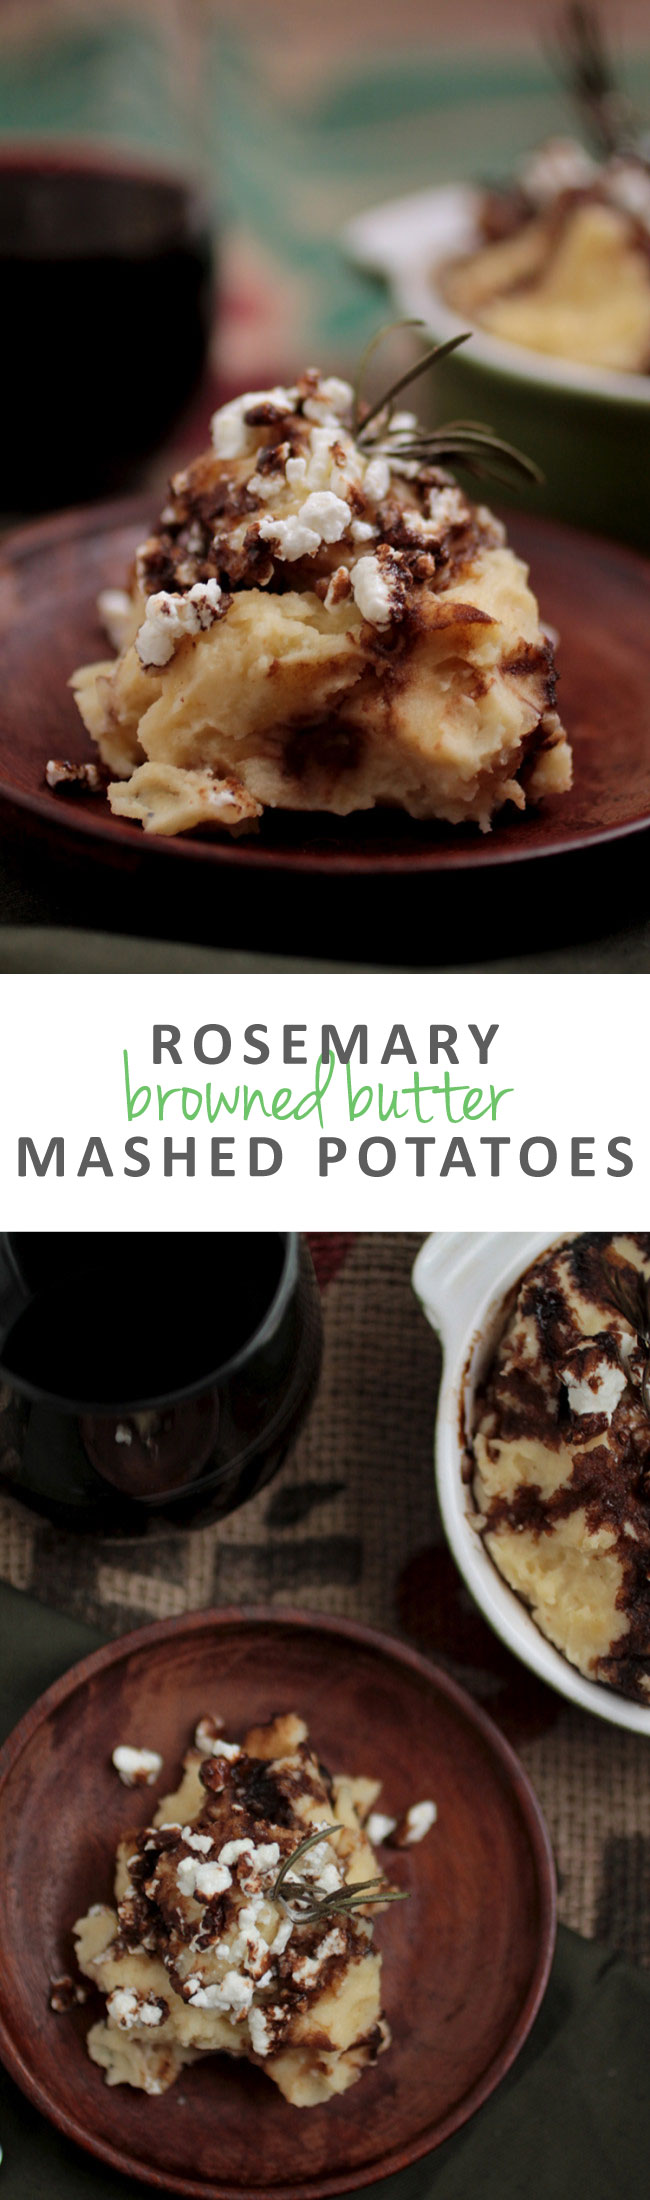 Rosemary Browned Butter Mashed Potatoes with Goat Cheese and Balsamic Glaze | Step up your side dish recipe game with these decadent, incredible mashed potatoes. Vegetarian.